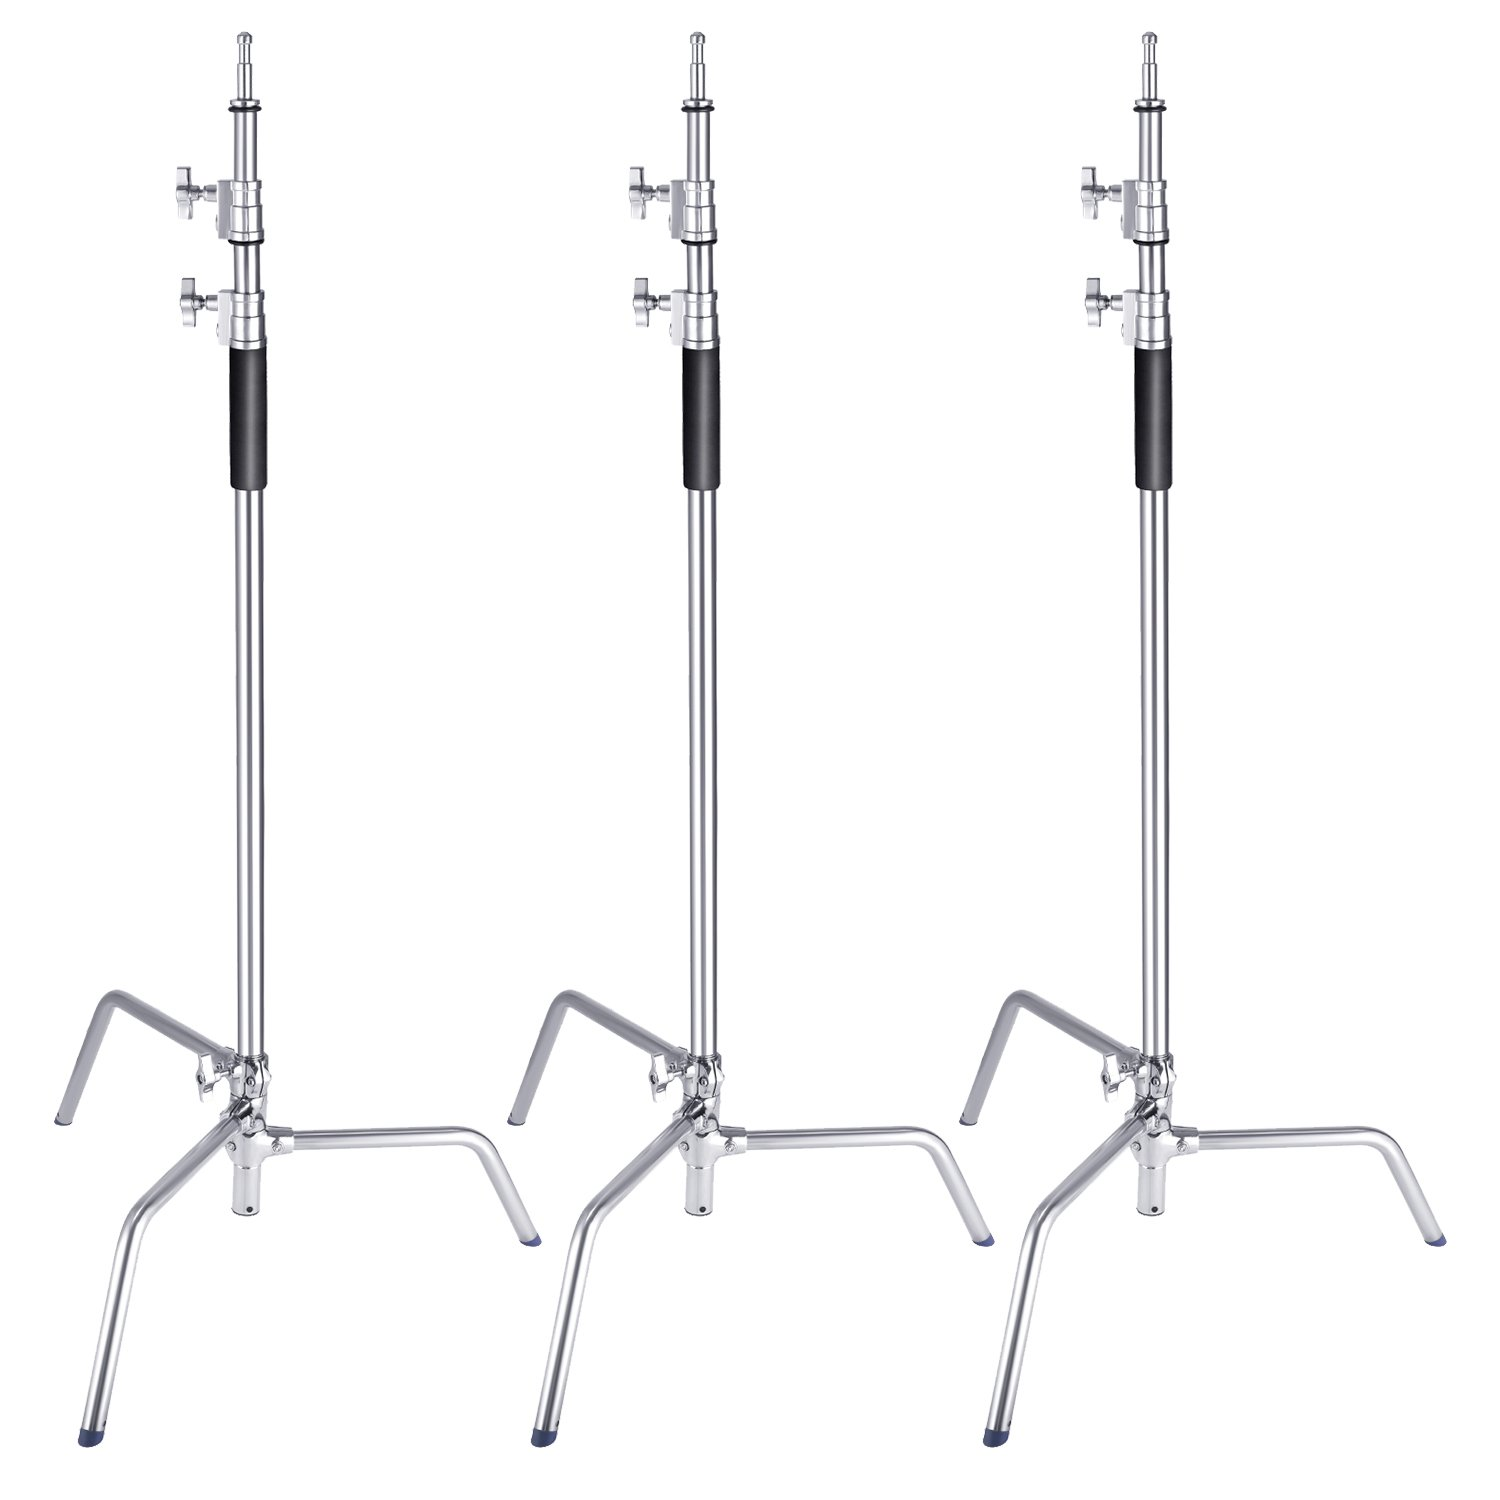 Neewer 3 Packs Stainless Steel Heavy Duty C-Stand, 5-10 feet/1.5-3 Meters Adjustable Photographic Sturdy Tripod for Reflectors, Softboxes, Monolights, Umbrellas by Neewer